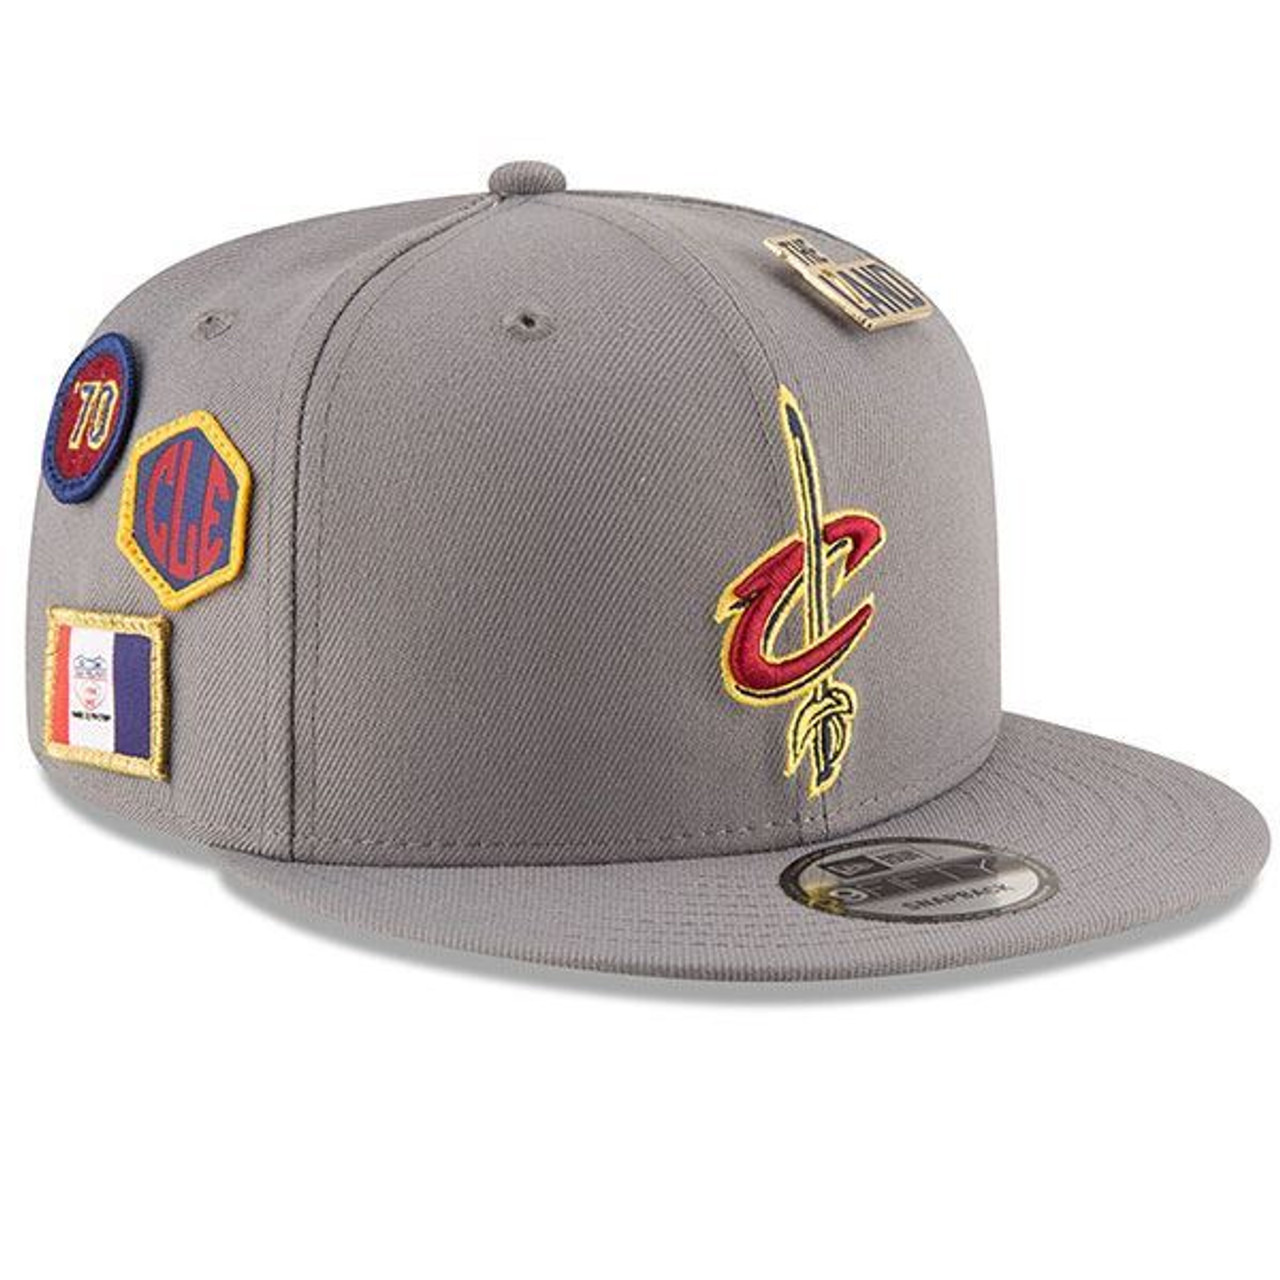 Youth 18-19 Draft Series Gray Snapback Cap - Cleveland Cavaliers 0b727bbd789